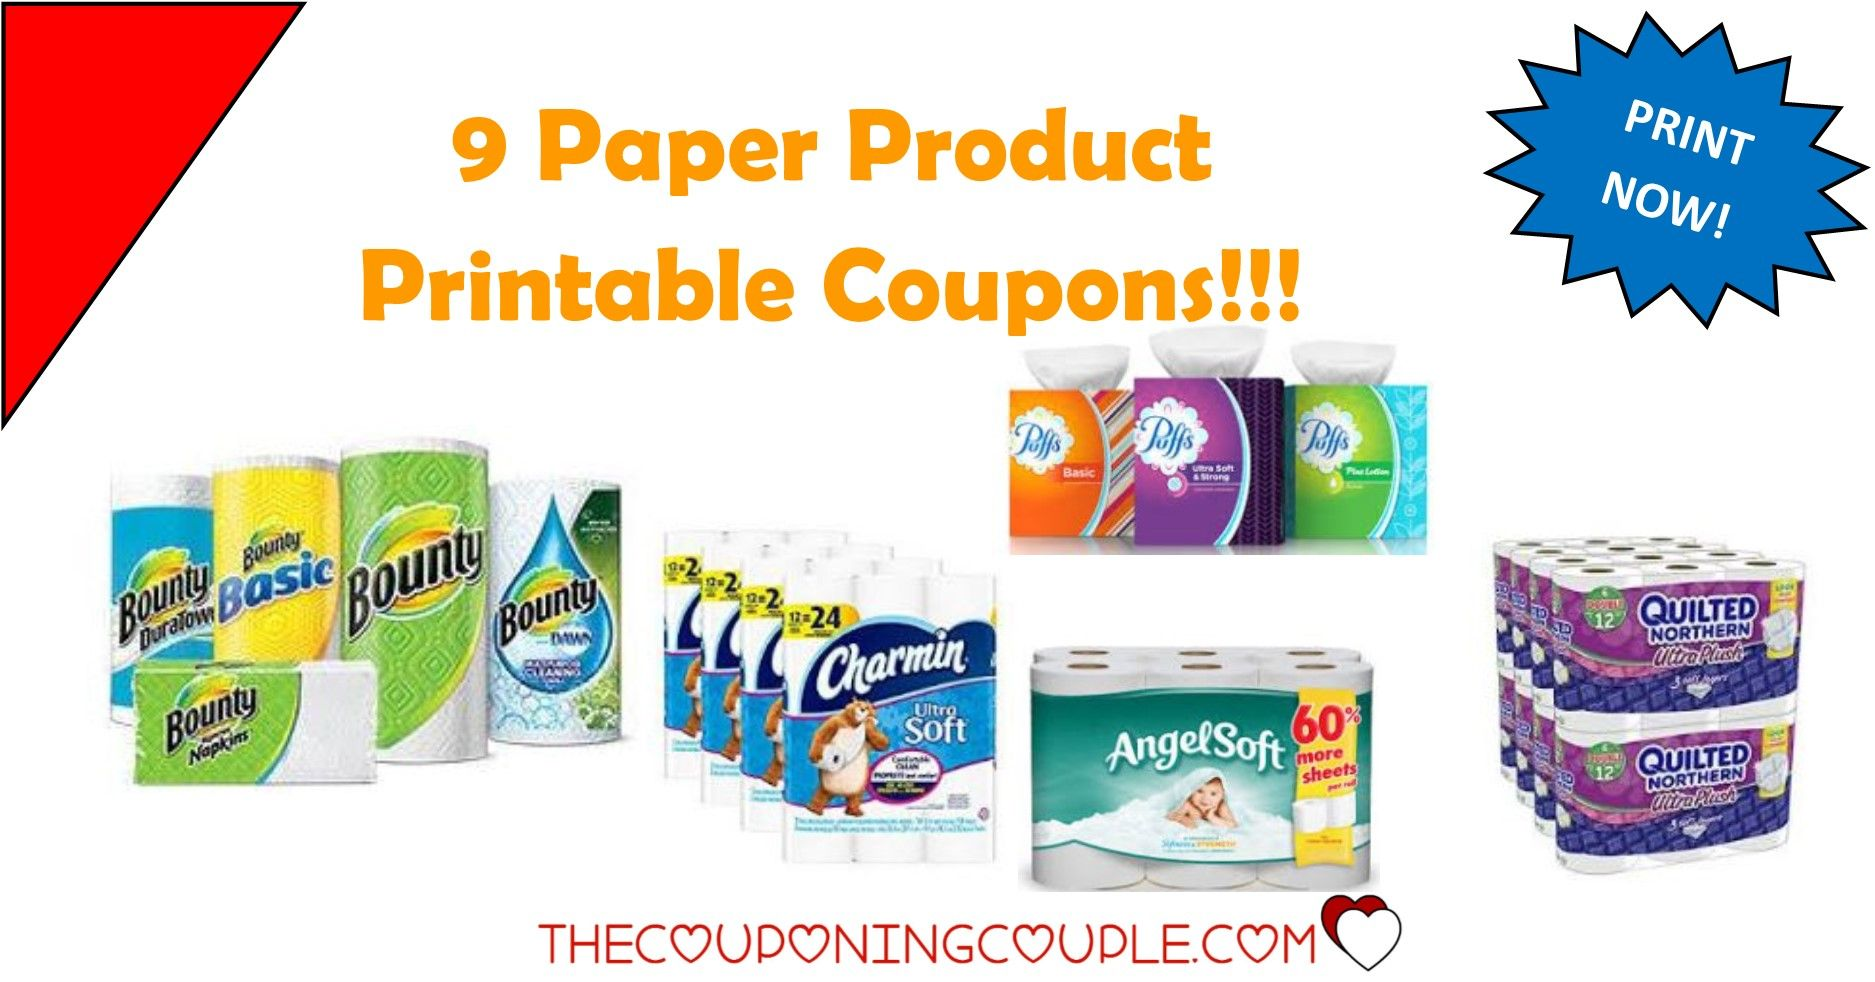 image about Bounty Coupons Printable titled 8 Paper Content Printable Discount coupons ~ Bounty, Cottonelle